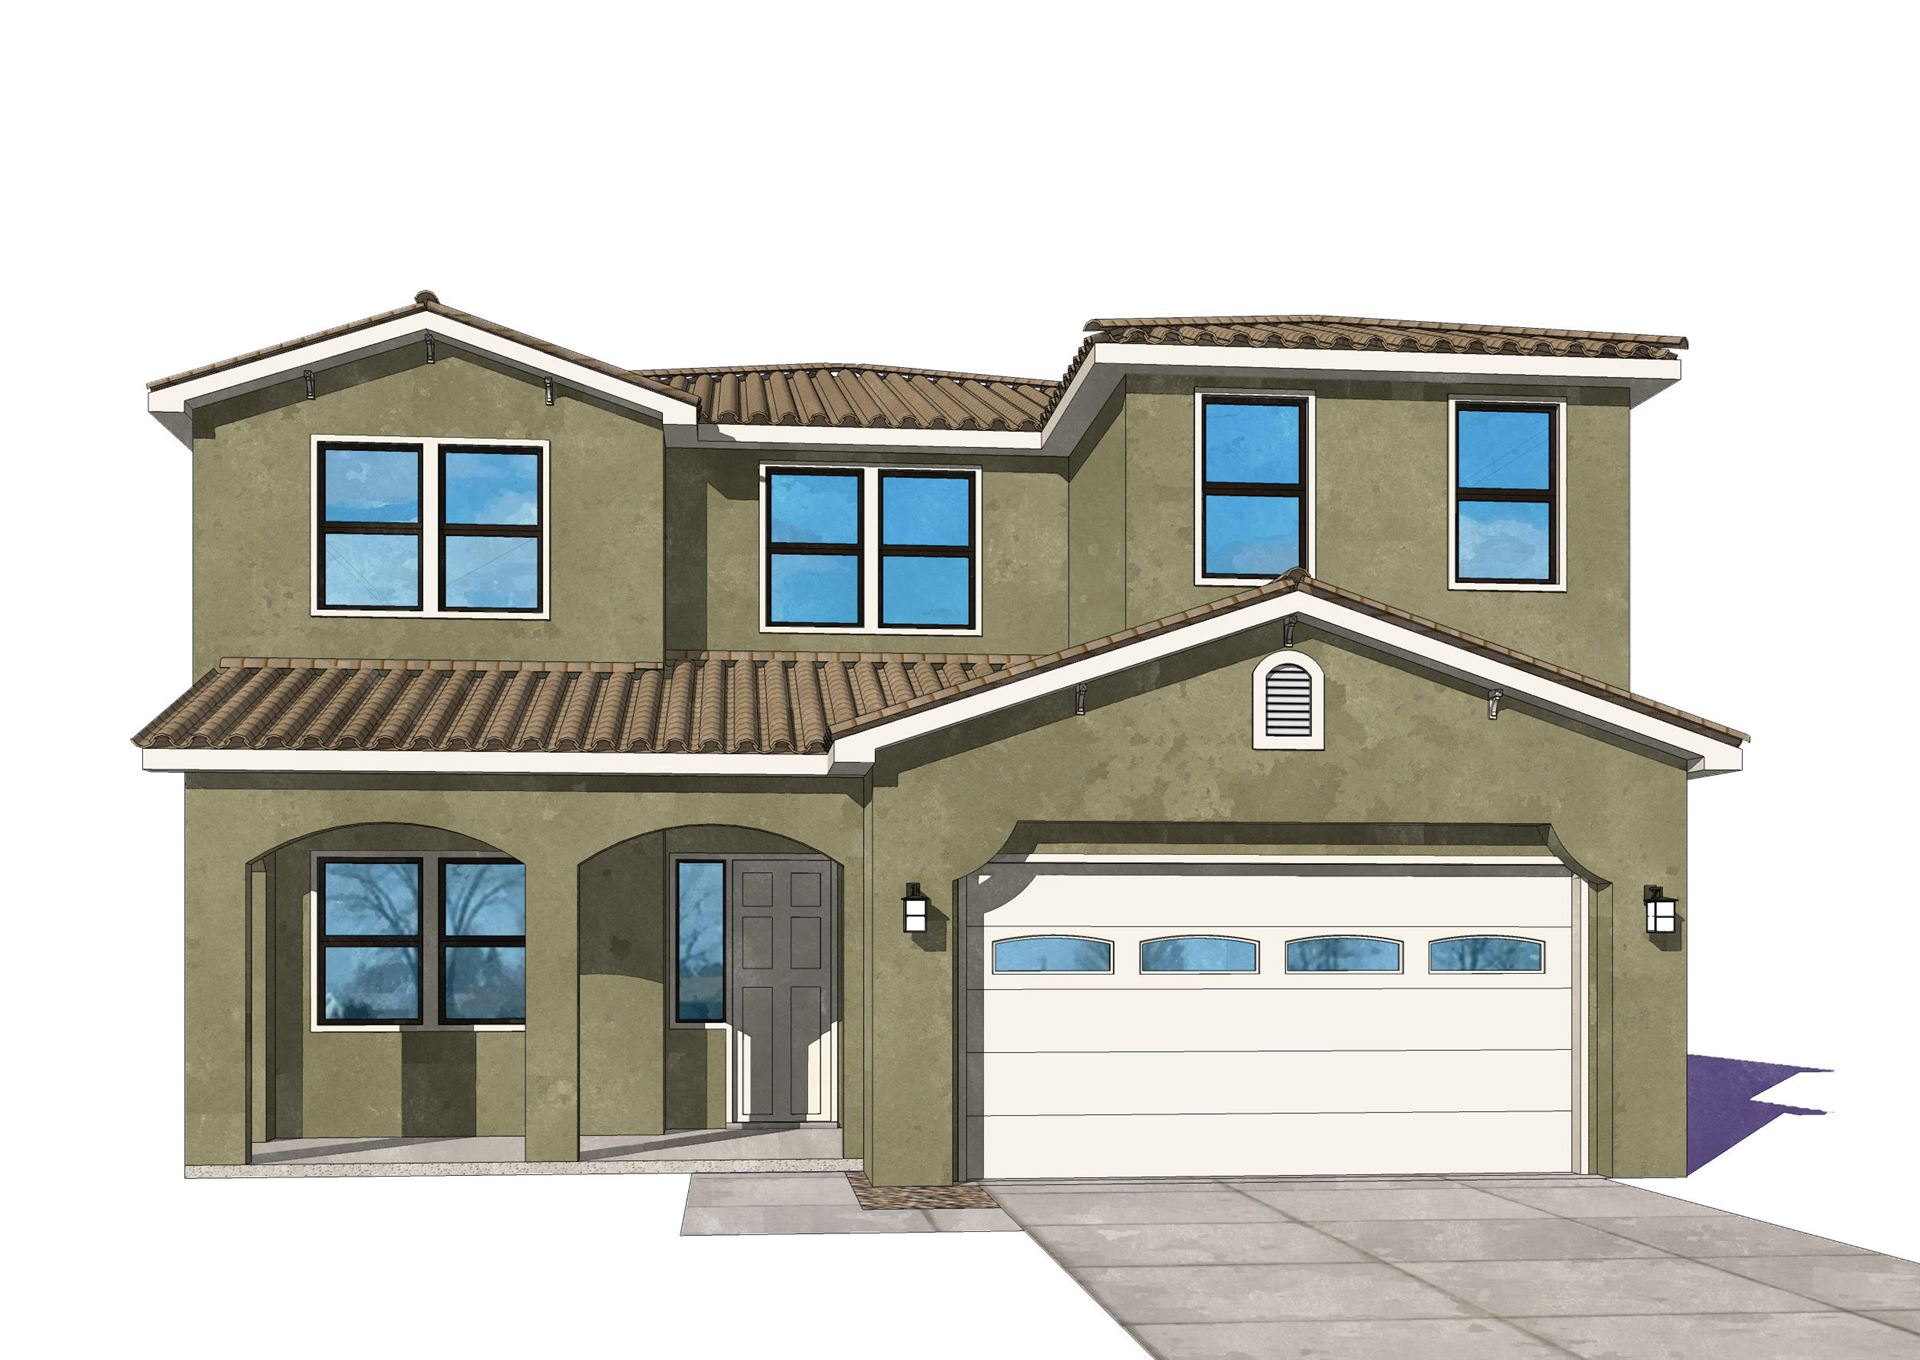 11415 MANZANO VISTA Avenue SE, Albuquerque, NM 87123 - MLS#: 983610